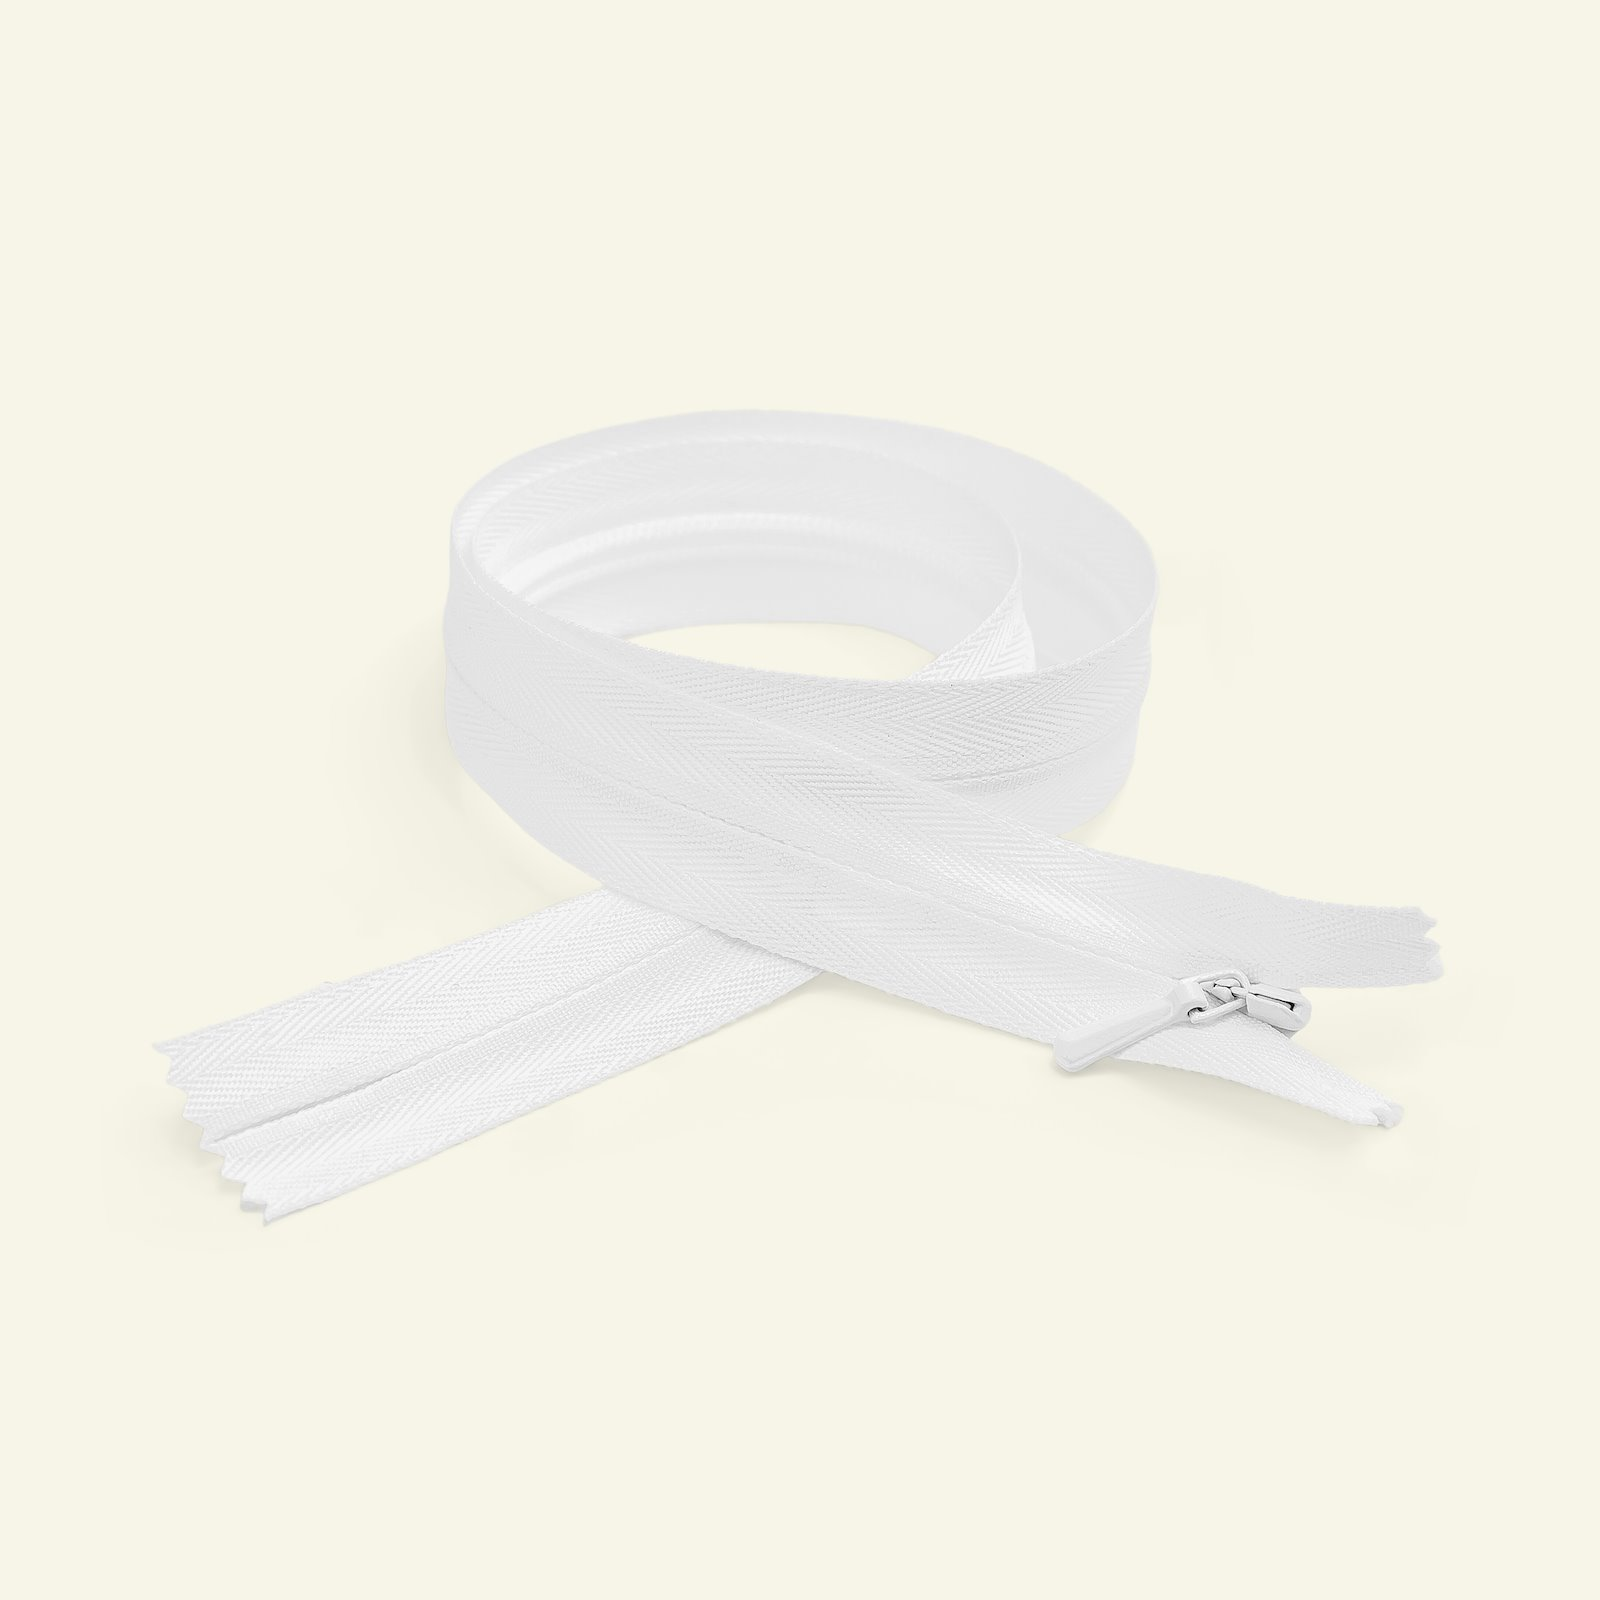 YKK zip 4mm invisible closed 30cm white x40701_pack